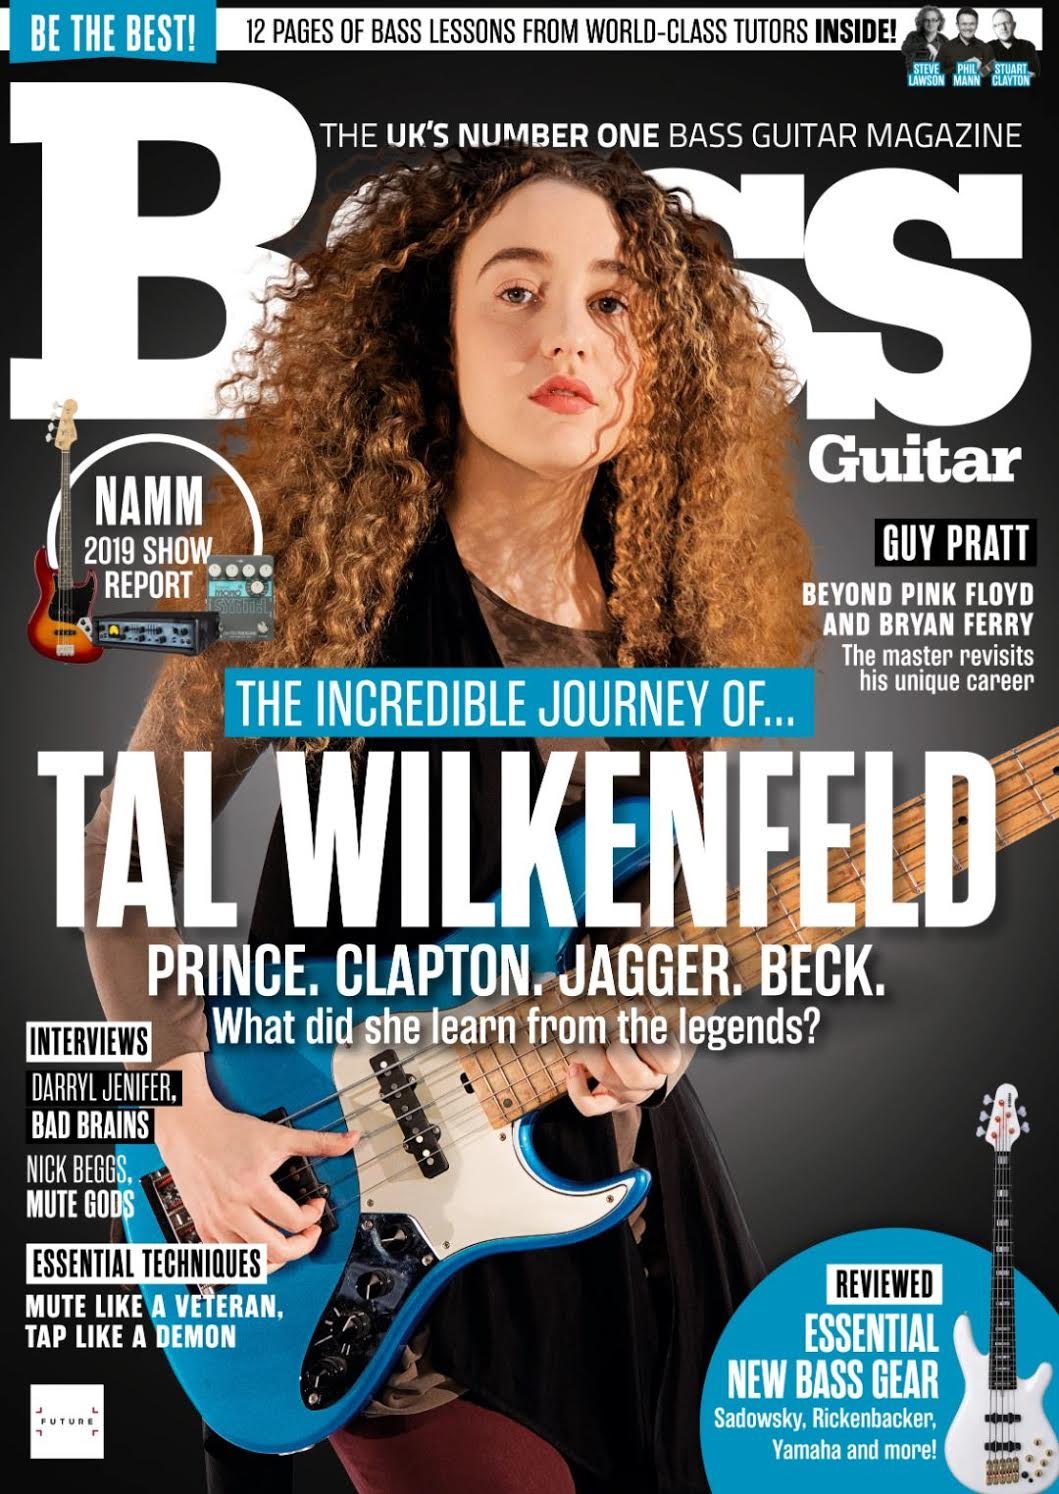 image TAL IS ON THE COVER OF THIS MONTH'S GUITAR MAGAZINE!